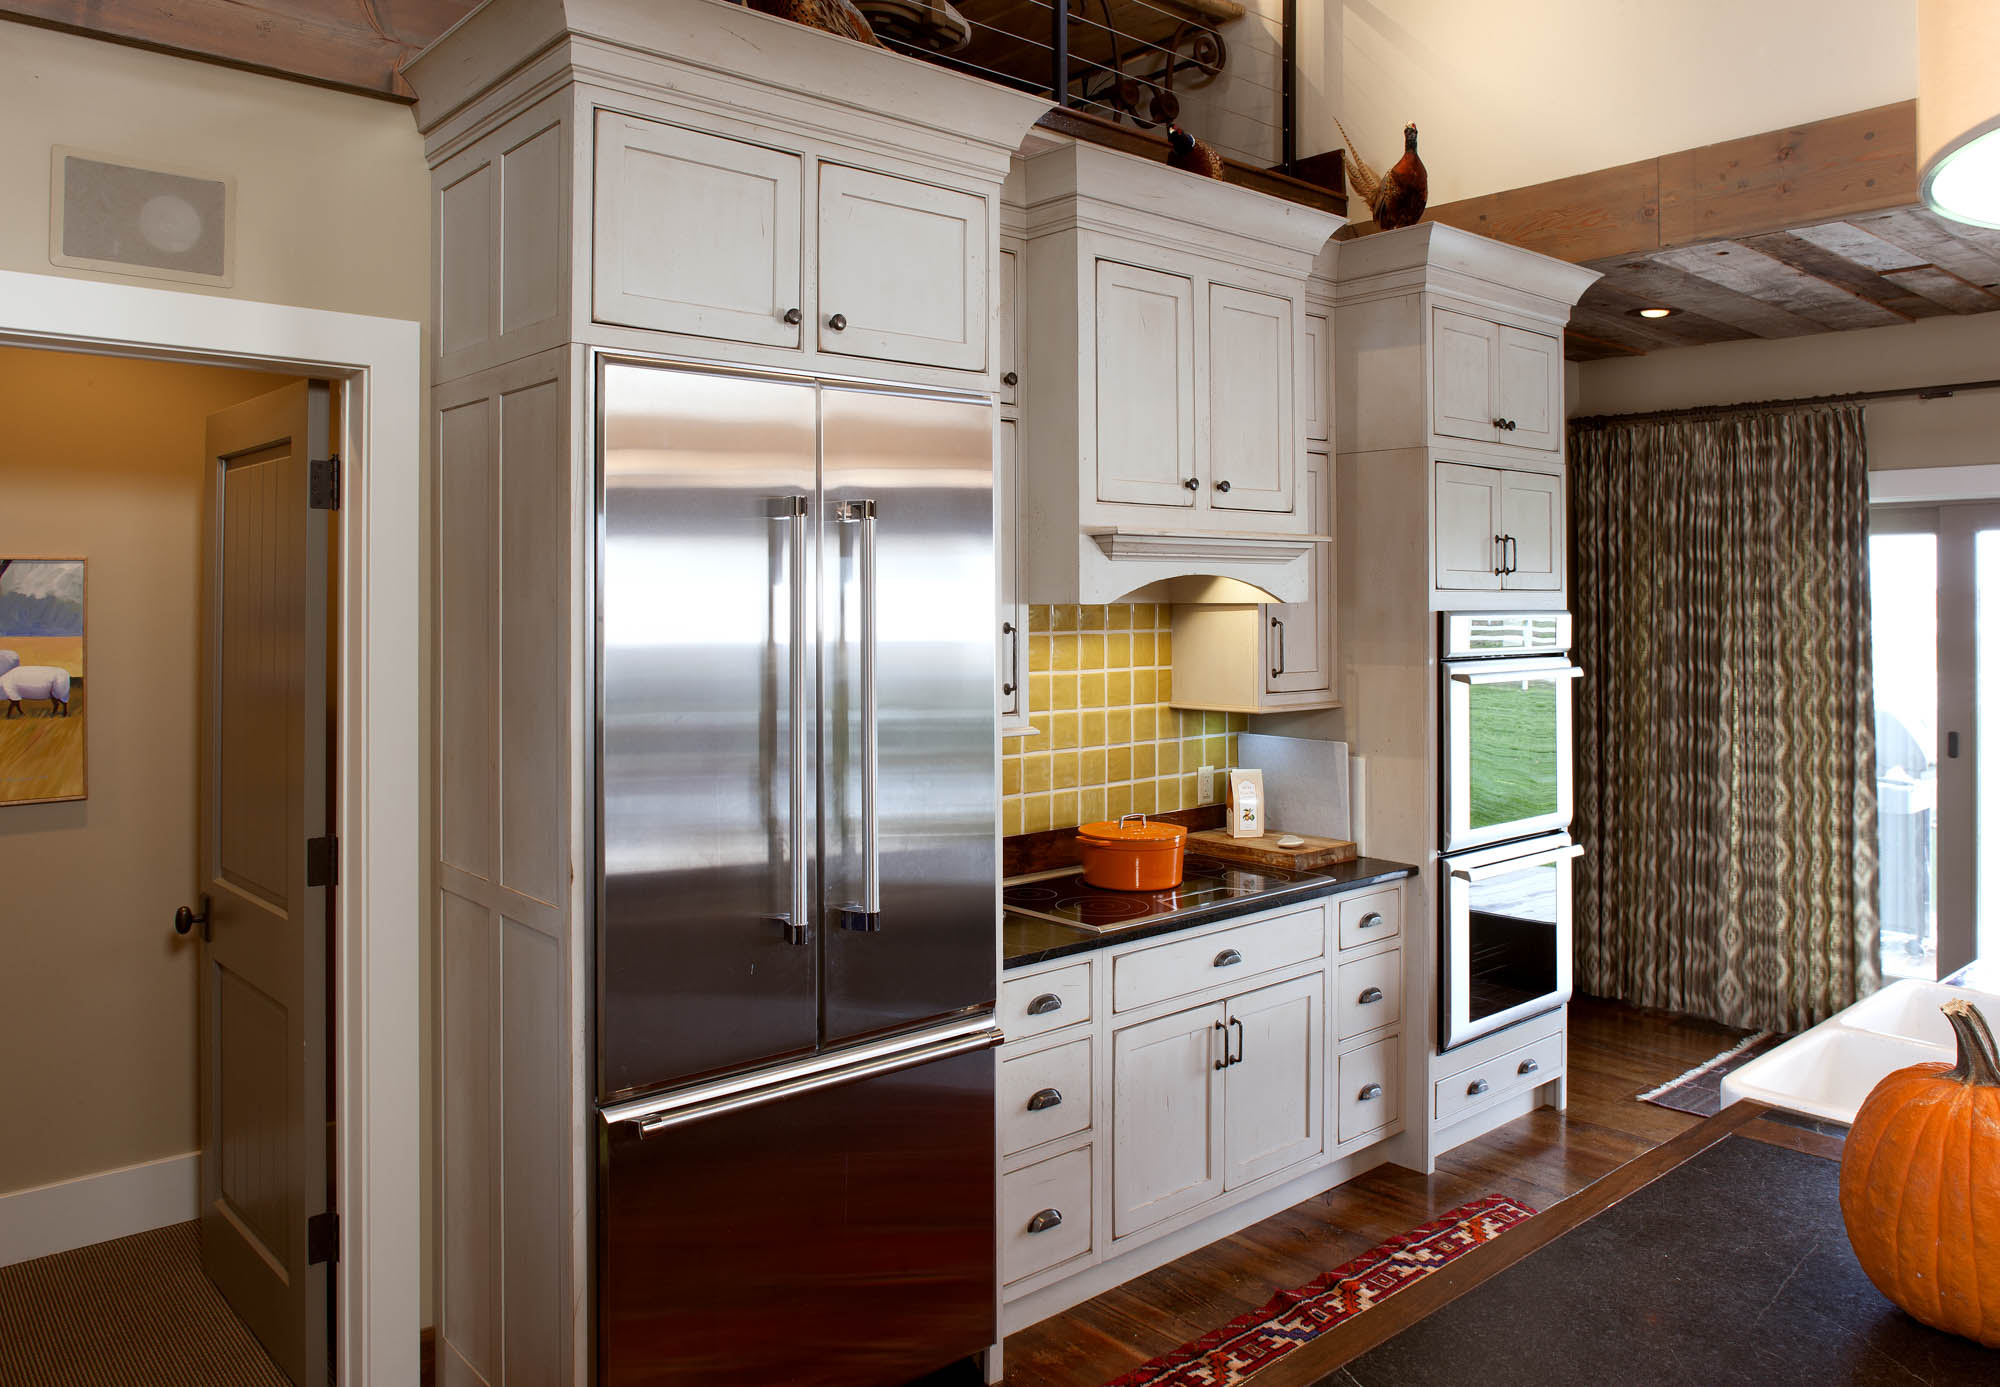 Painted Kitchen Cabinets In Vintage Oyster By Showplace Cabinetry   View 3